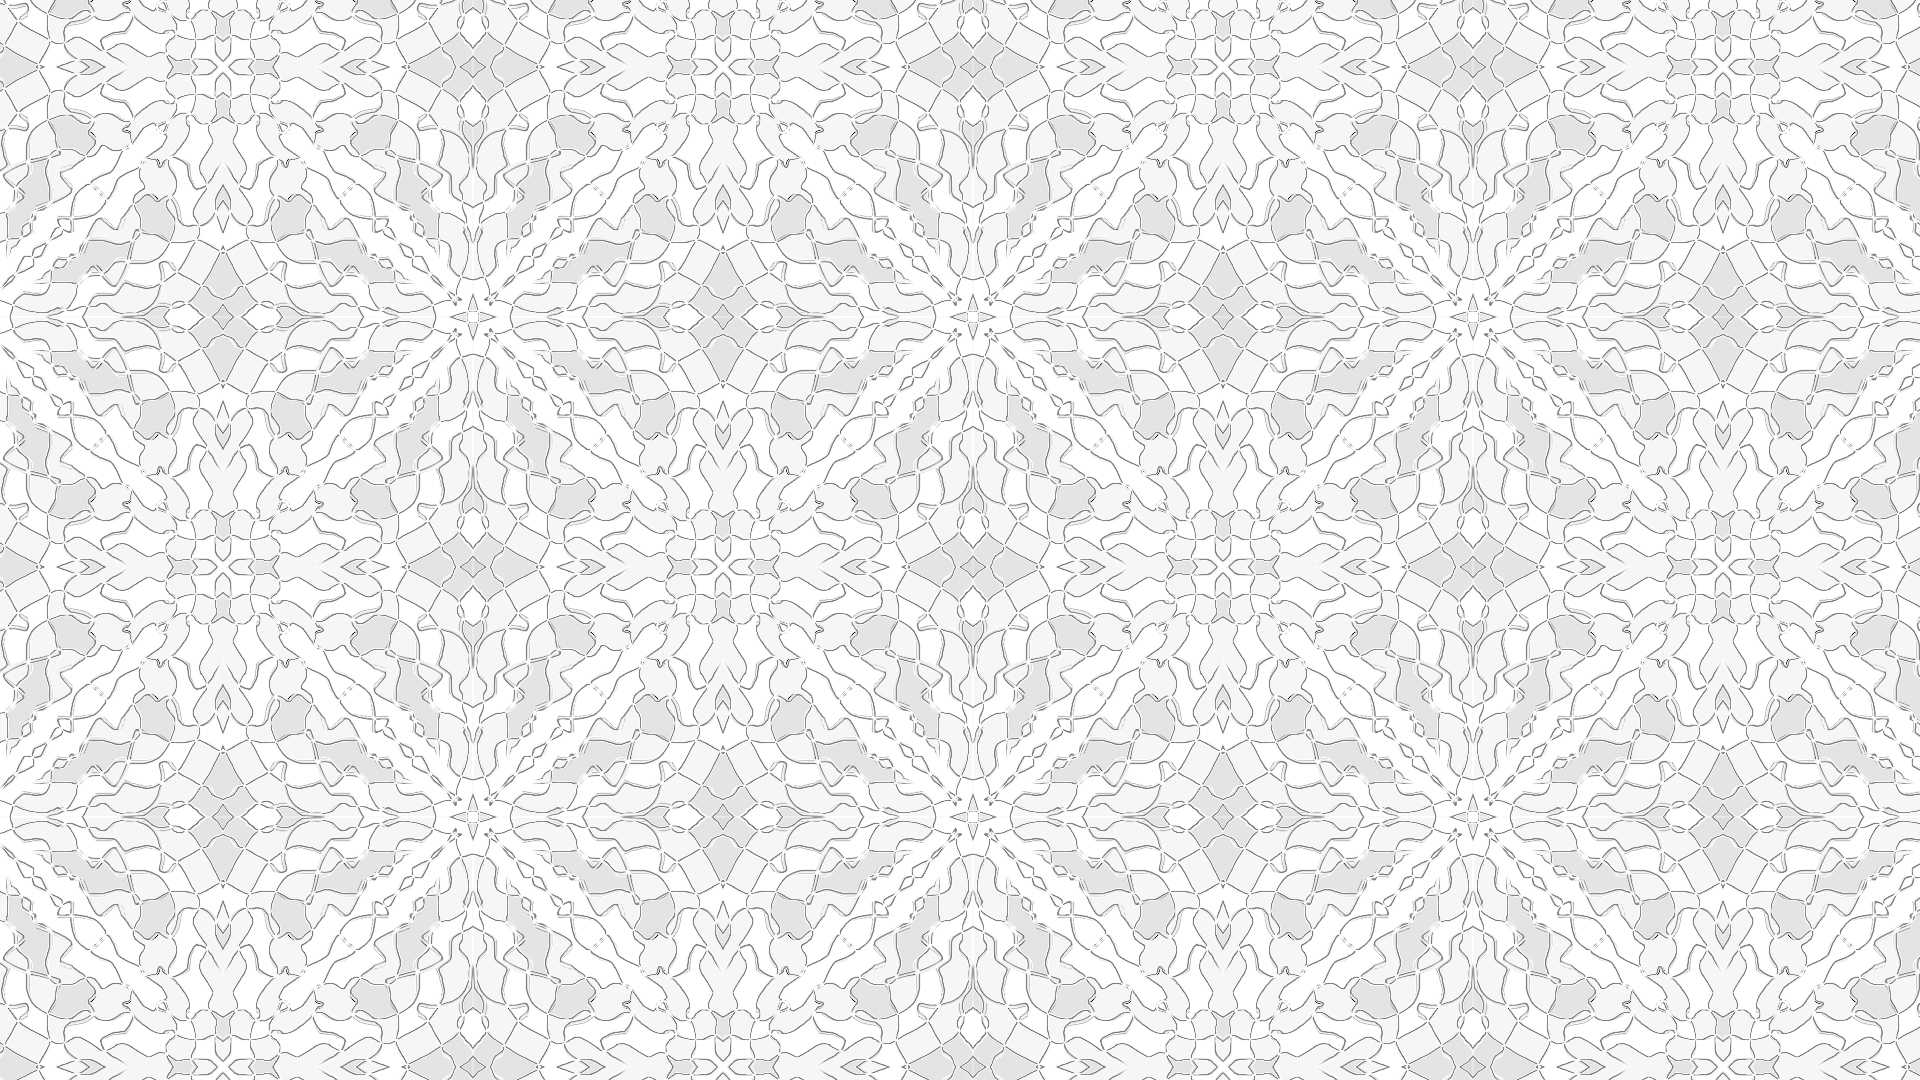 Cool grey wallpaper by cugini on deviantart for Grey and white wallpaper designs